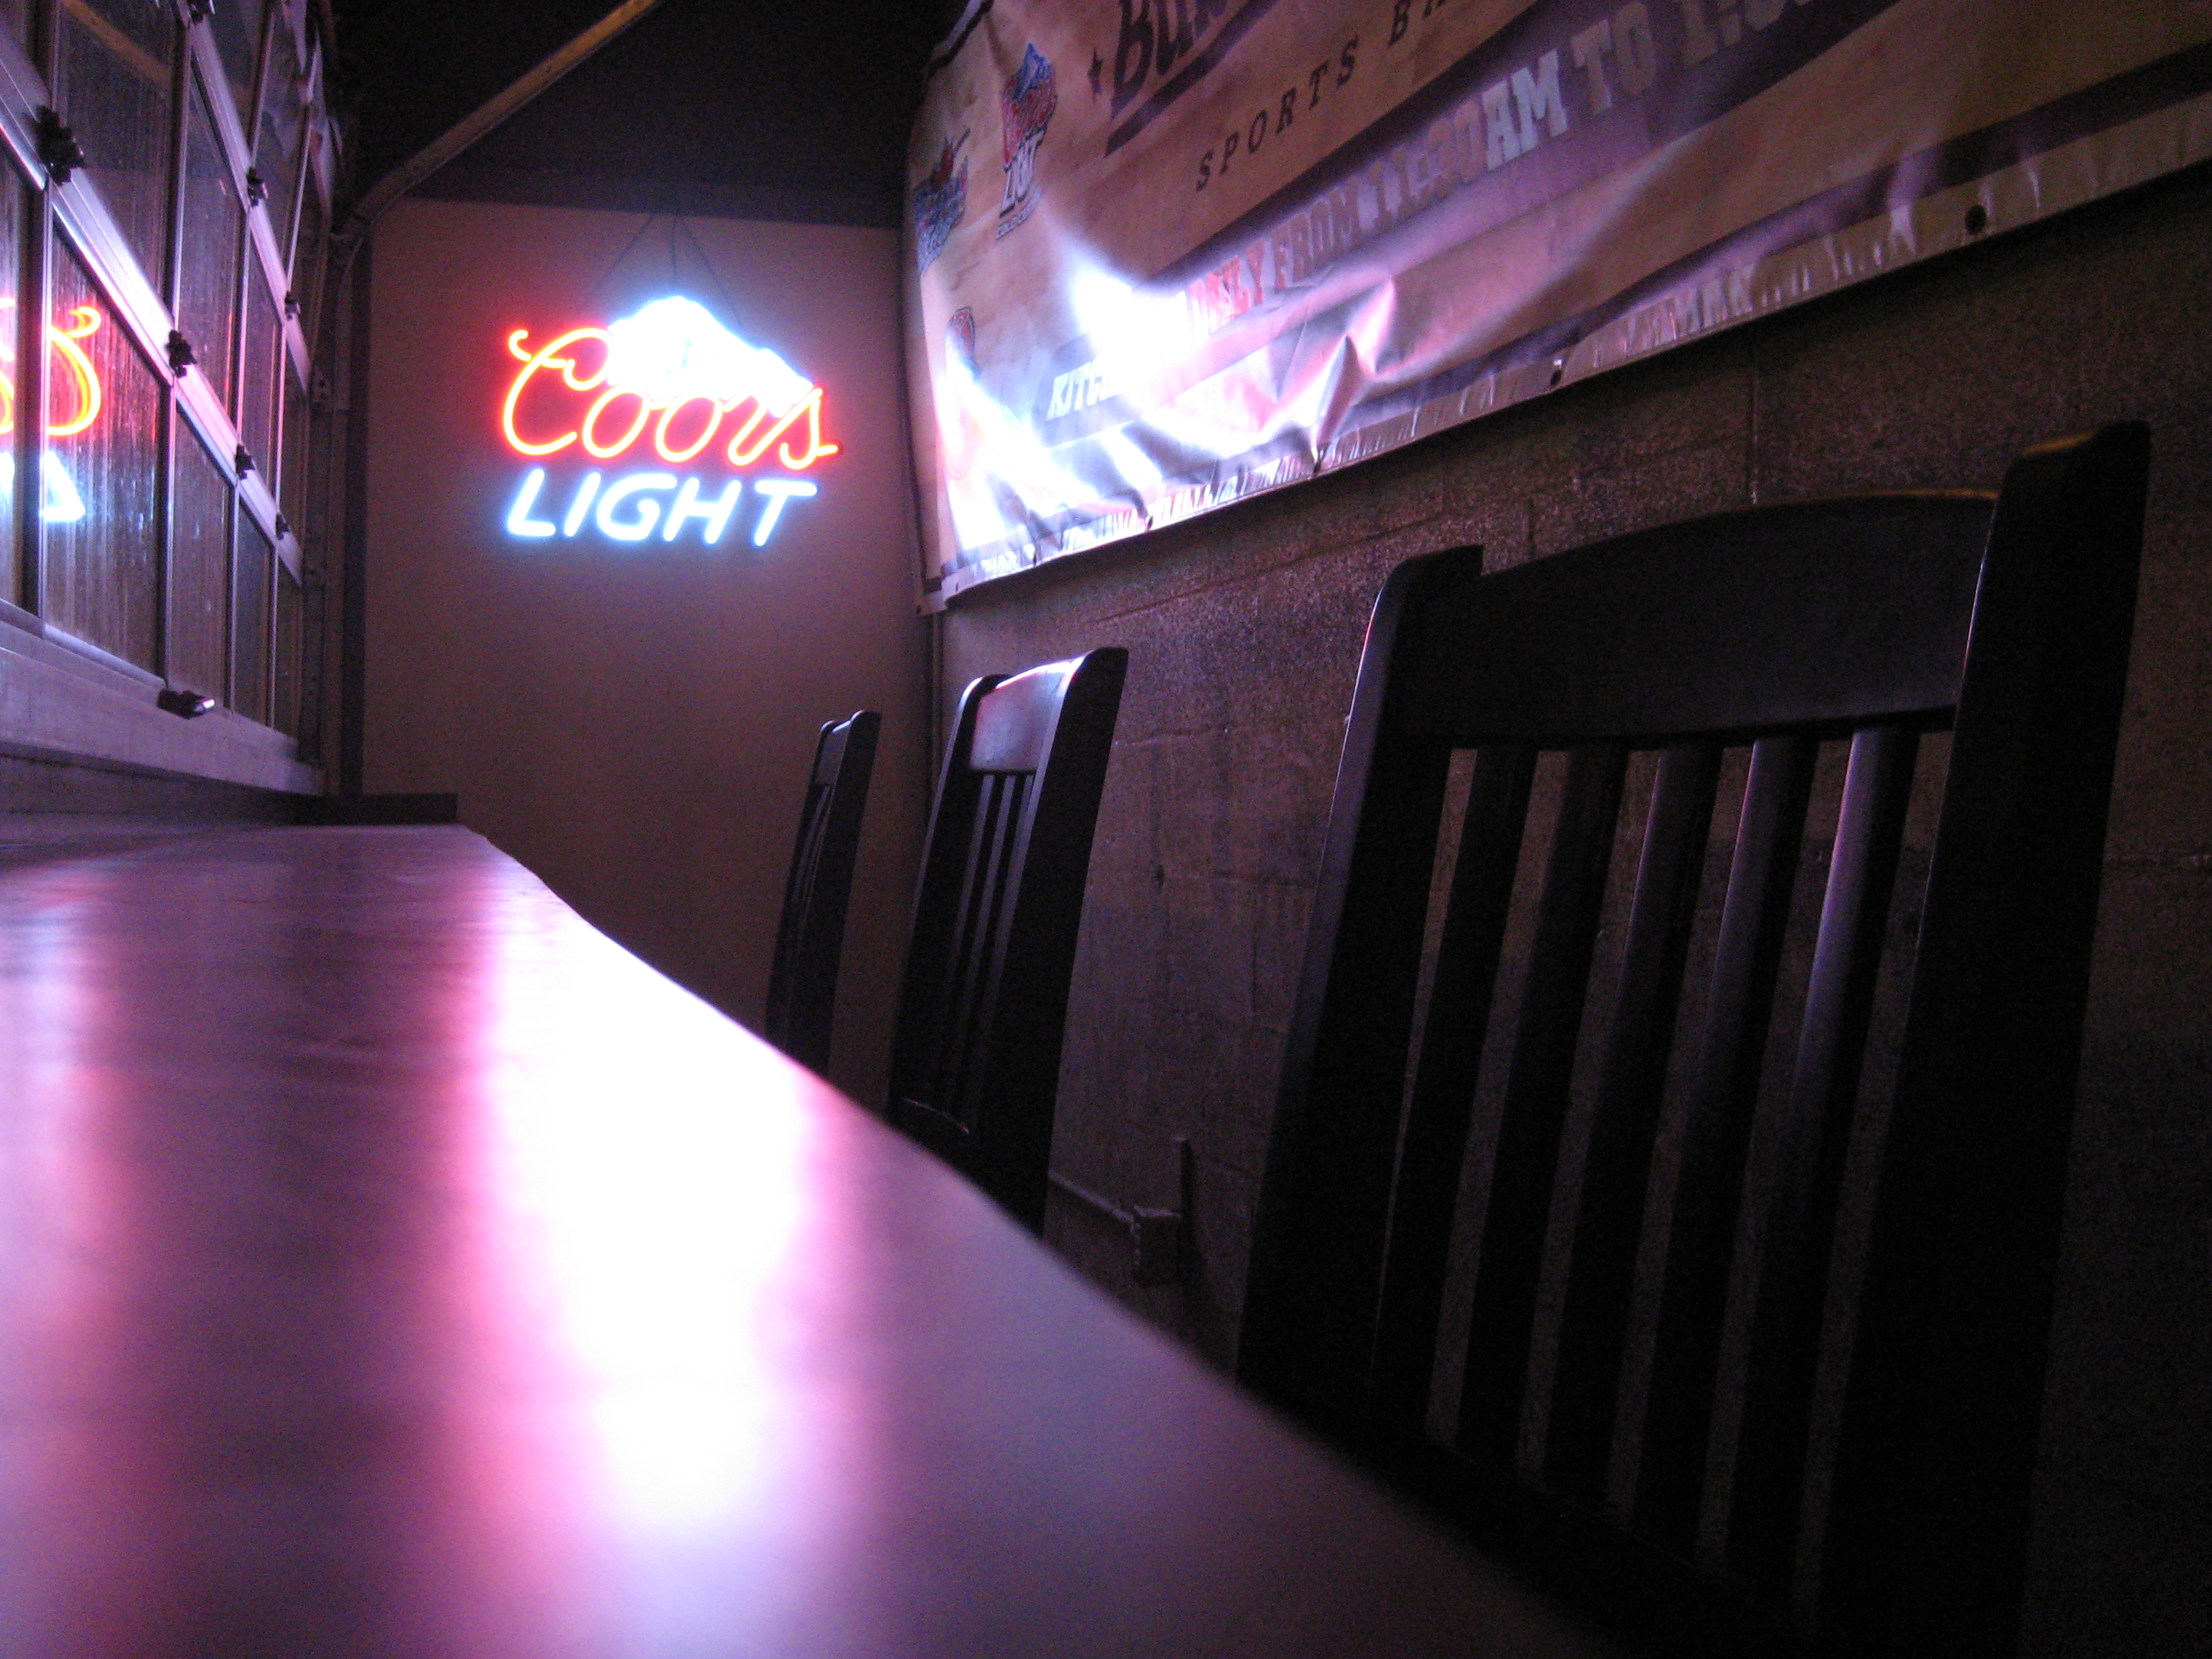 coors light chair 2x4 outdoor chairs and sign flickr photo sharing